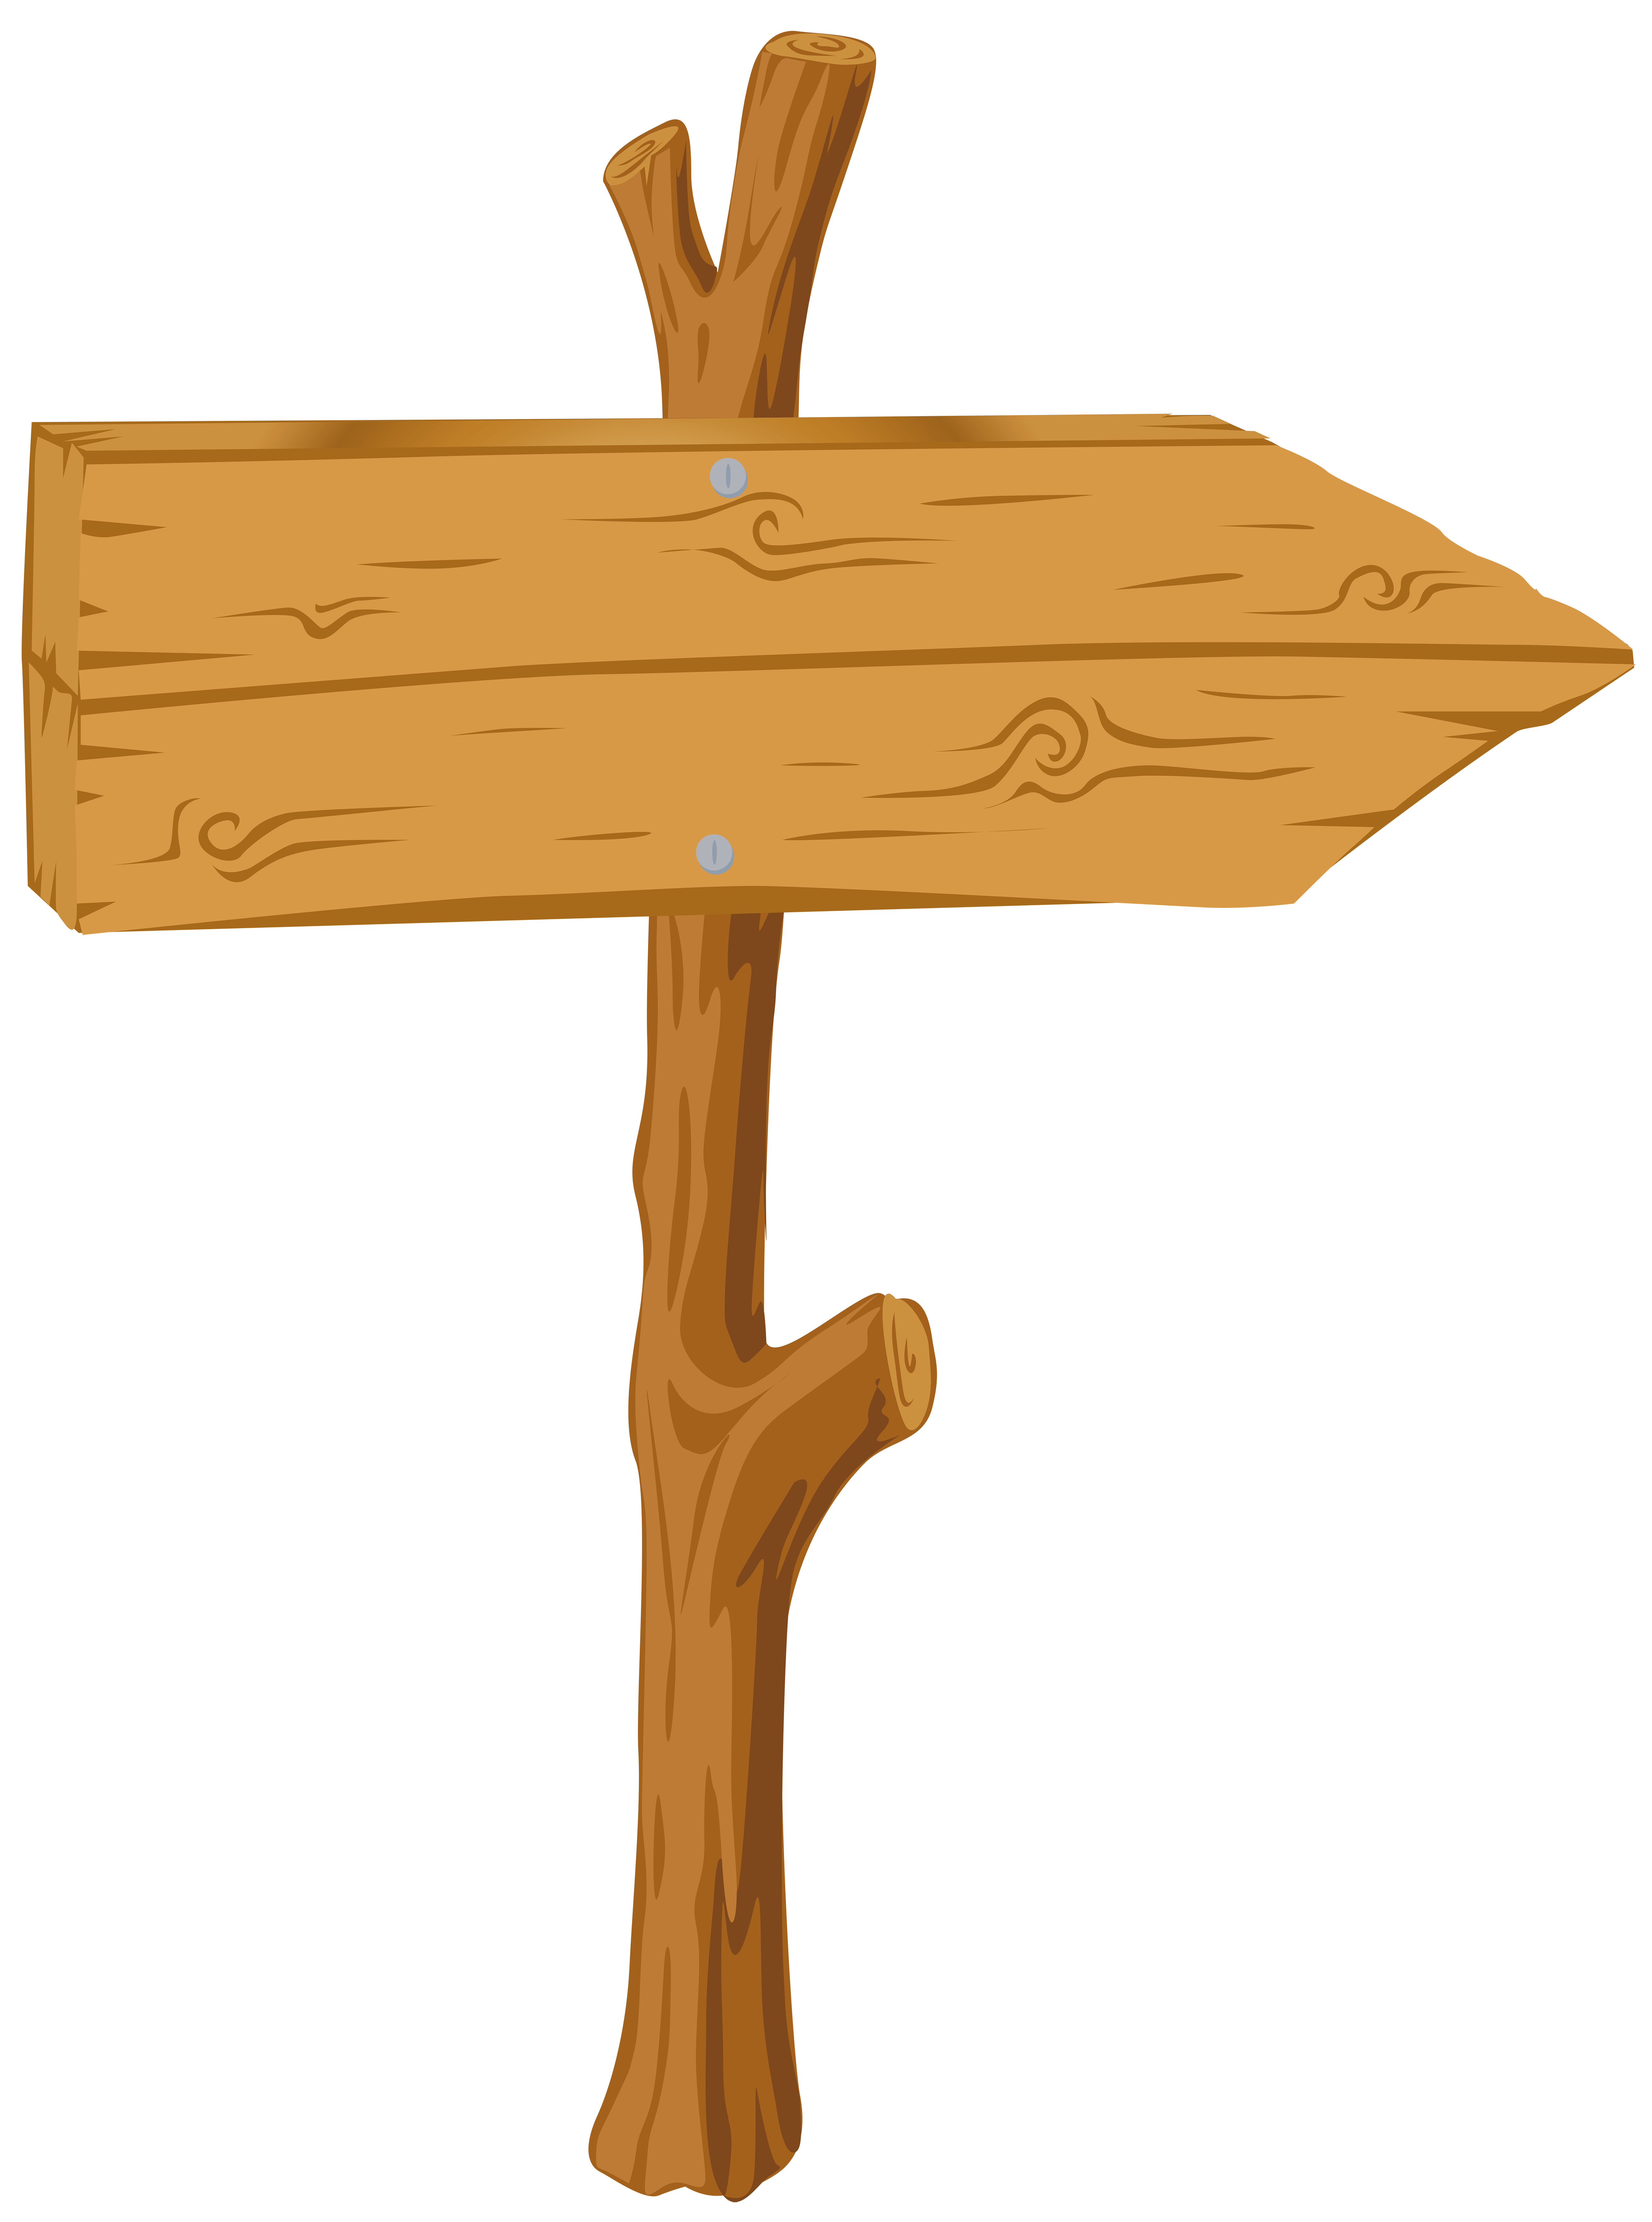 Road Sign Board Png Wooden Sign Transparent Png Clip Art Image Gallery